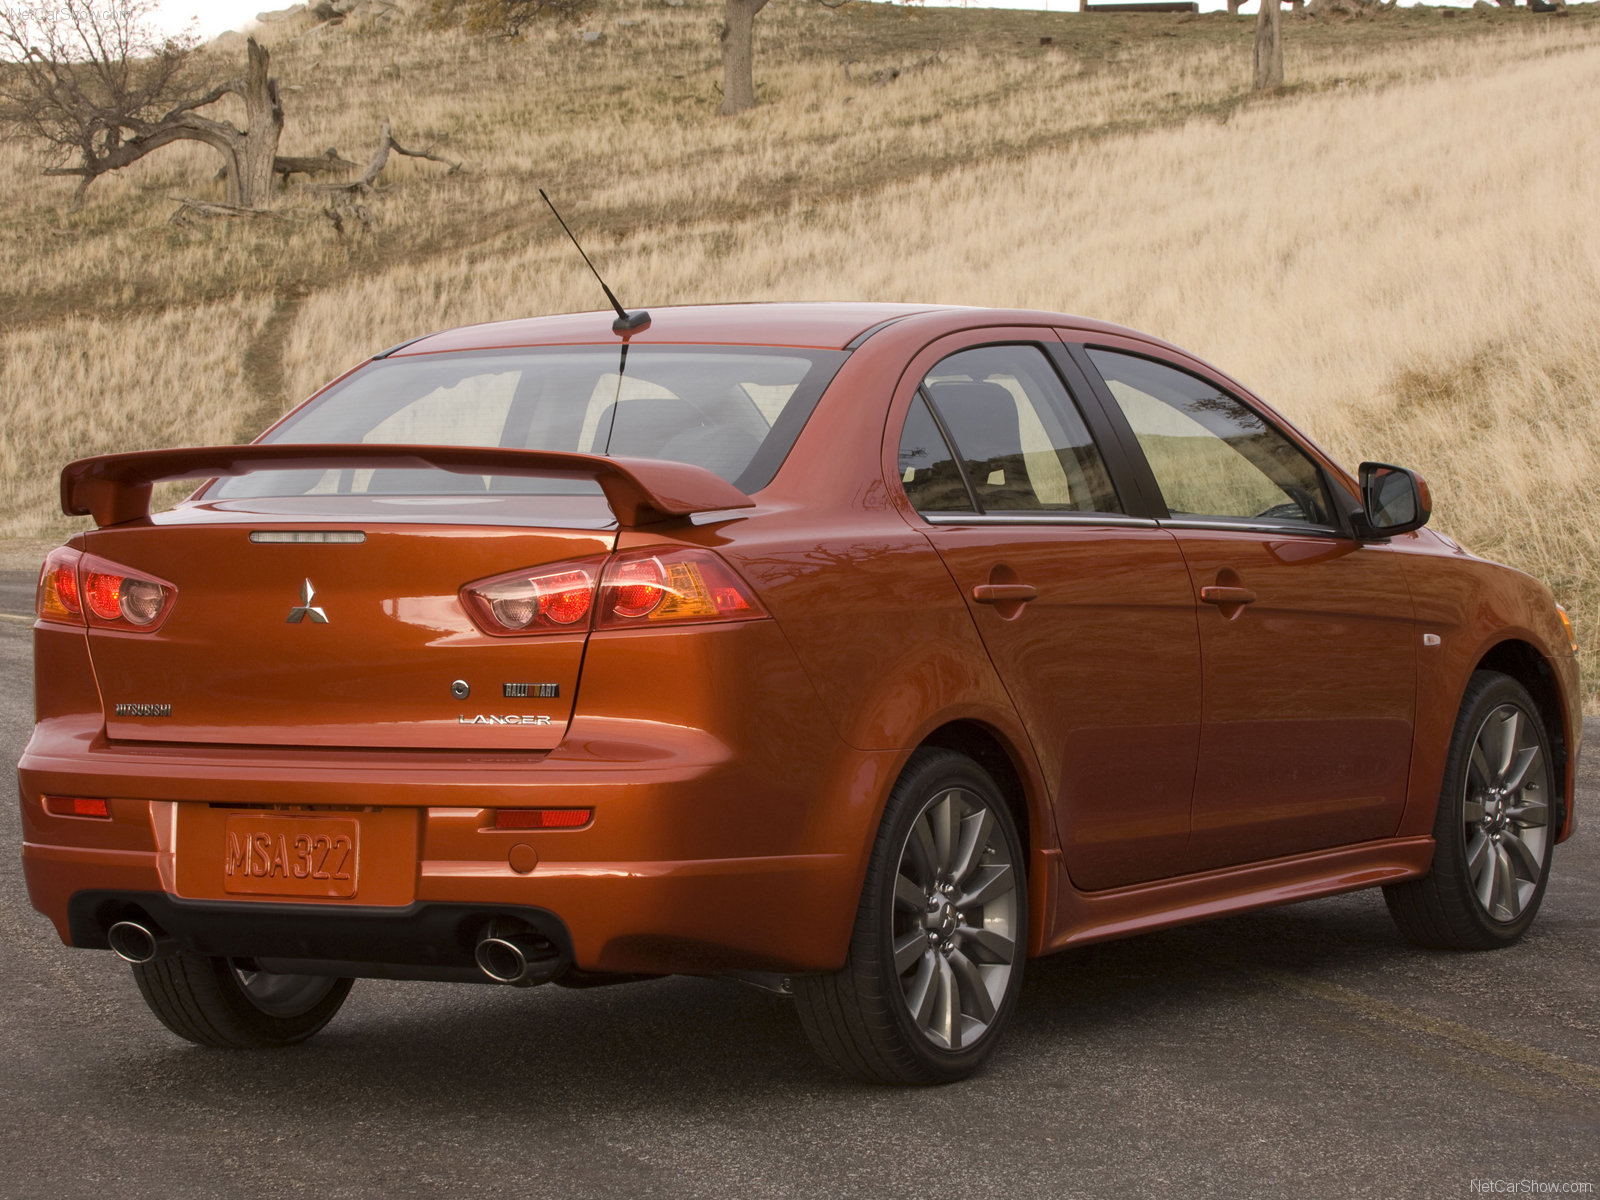 Sporty Car: Mitsubishi lancer ralliart